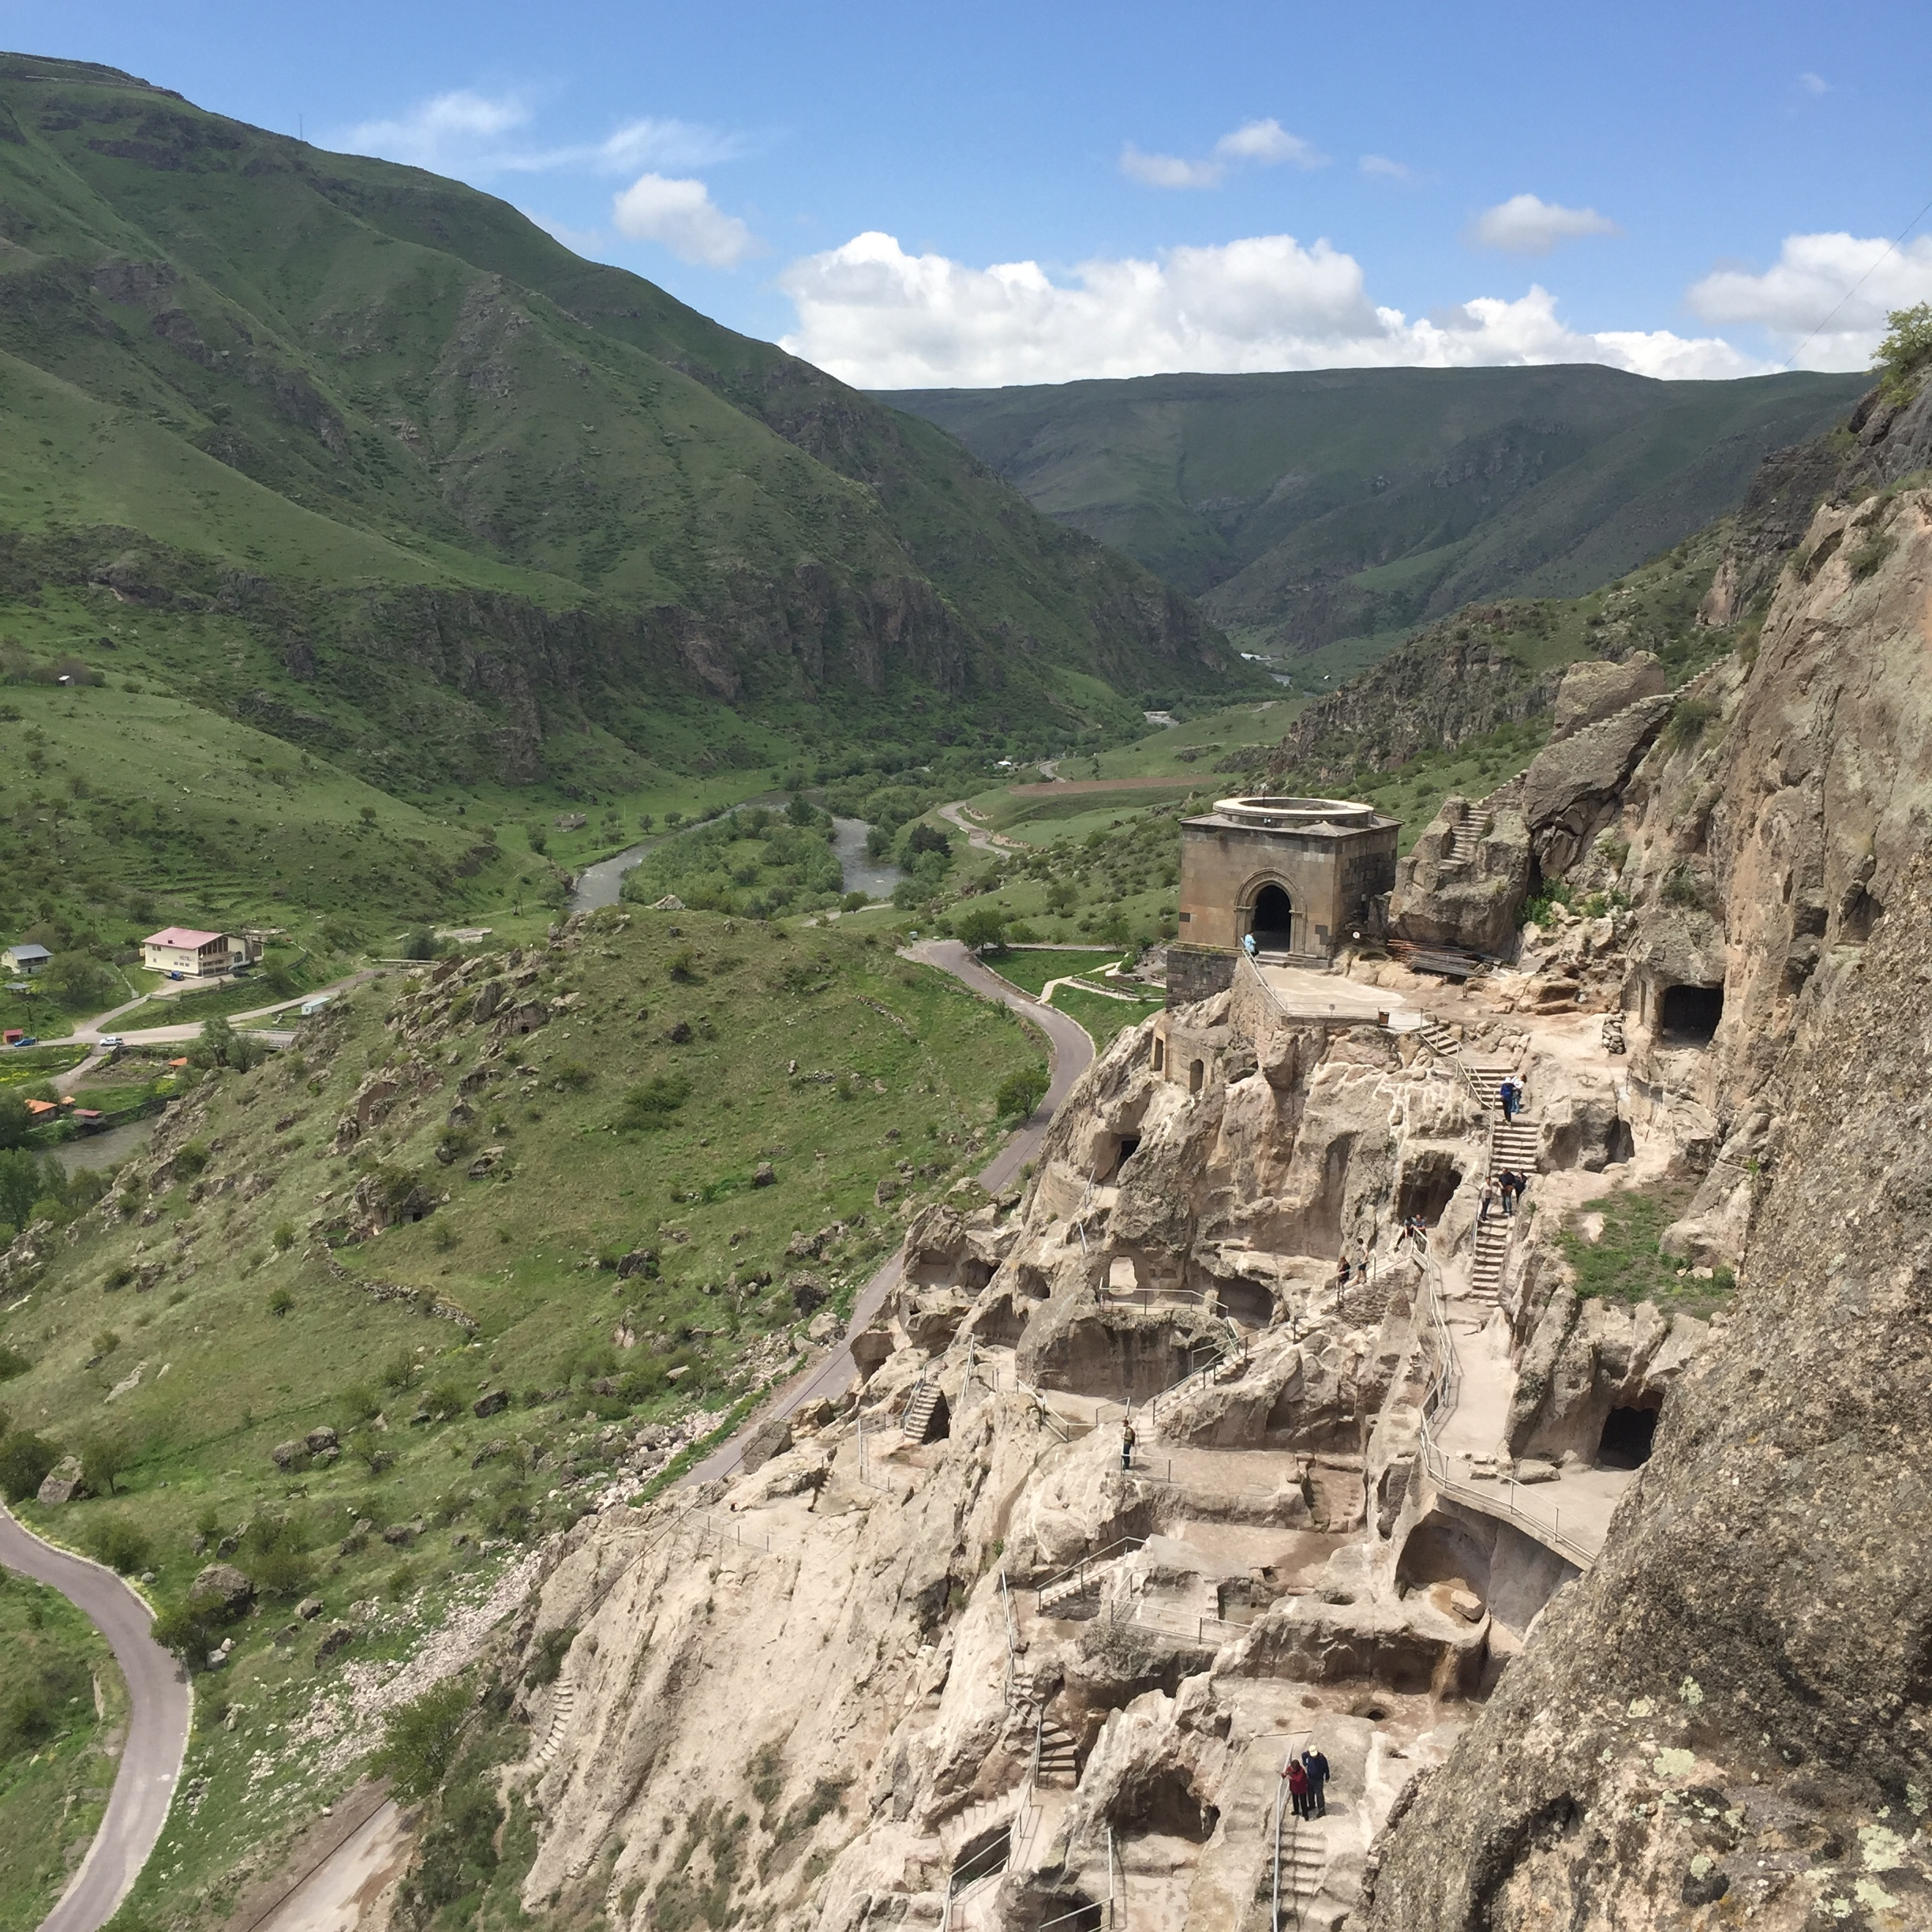 Another view of Vardzia cave city